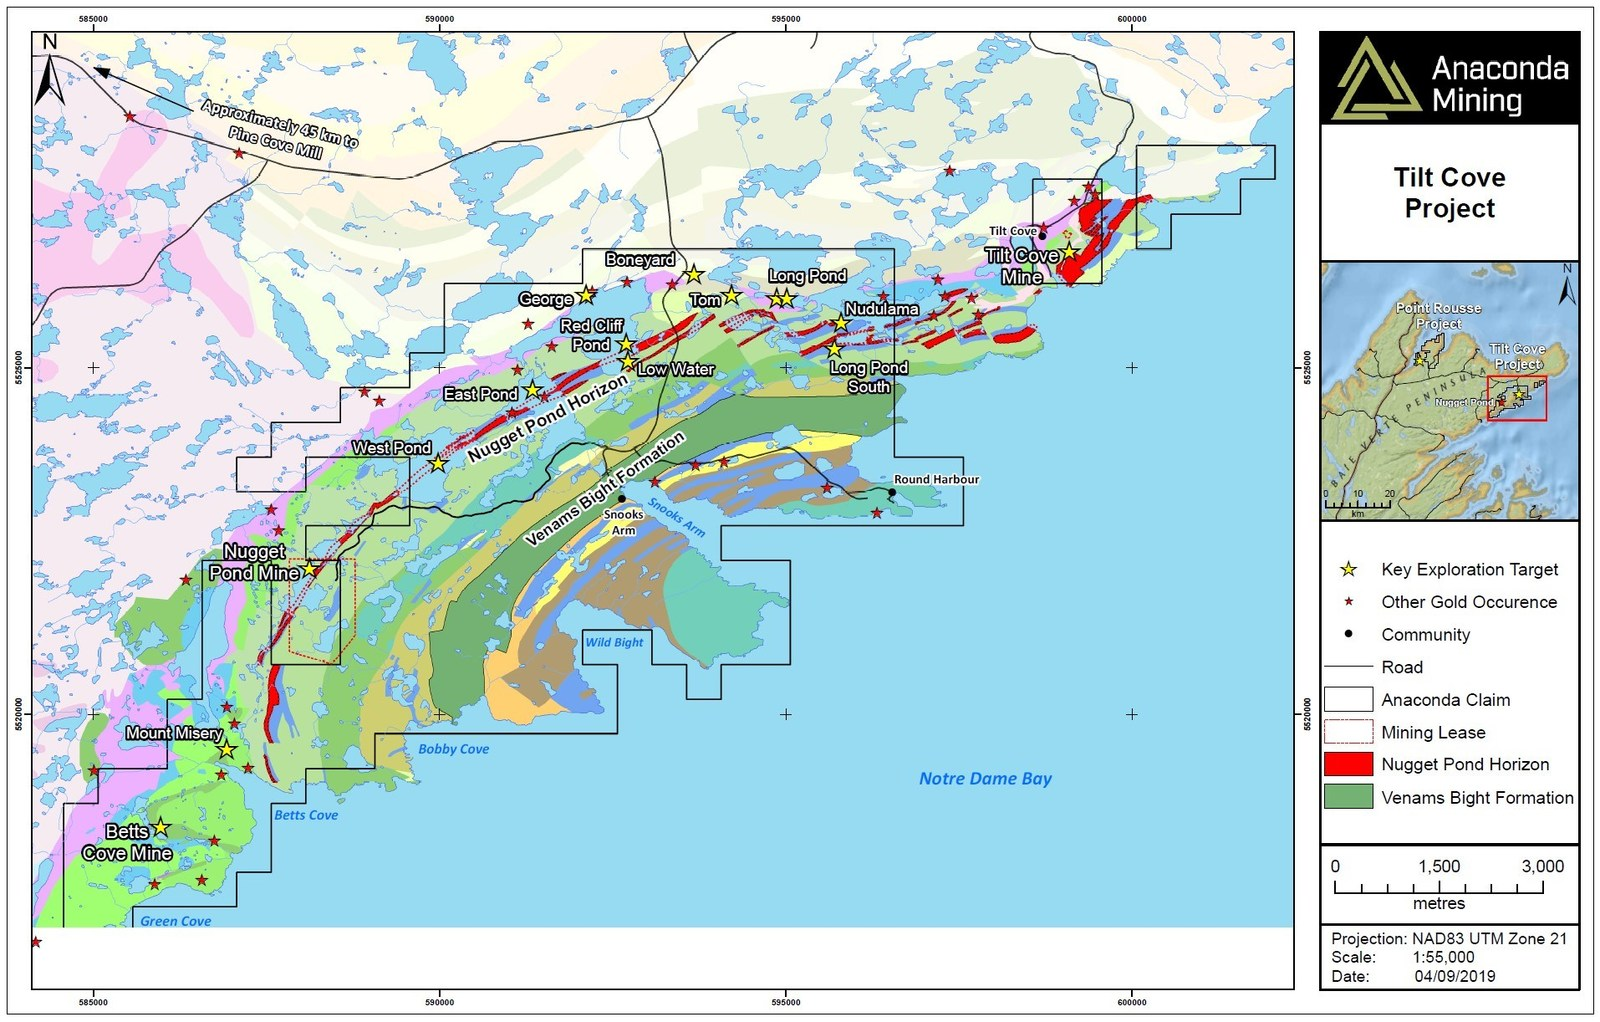 A geological map of the Tilt Cove Project in the Baie Verte Mining District of Newfoundland. The map highlights the Nugget Pond Horizon and the Venams Bight Formation as key host rocks to gold deposits at both the Tilt Cove and Point Rousse Projects as well as key exploration targets. The project is located approximately 45 km from the Company's operating Pine Cove mill and tailings storage facilities.